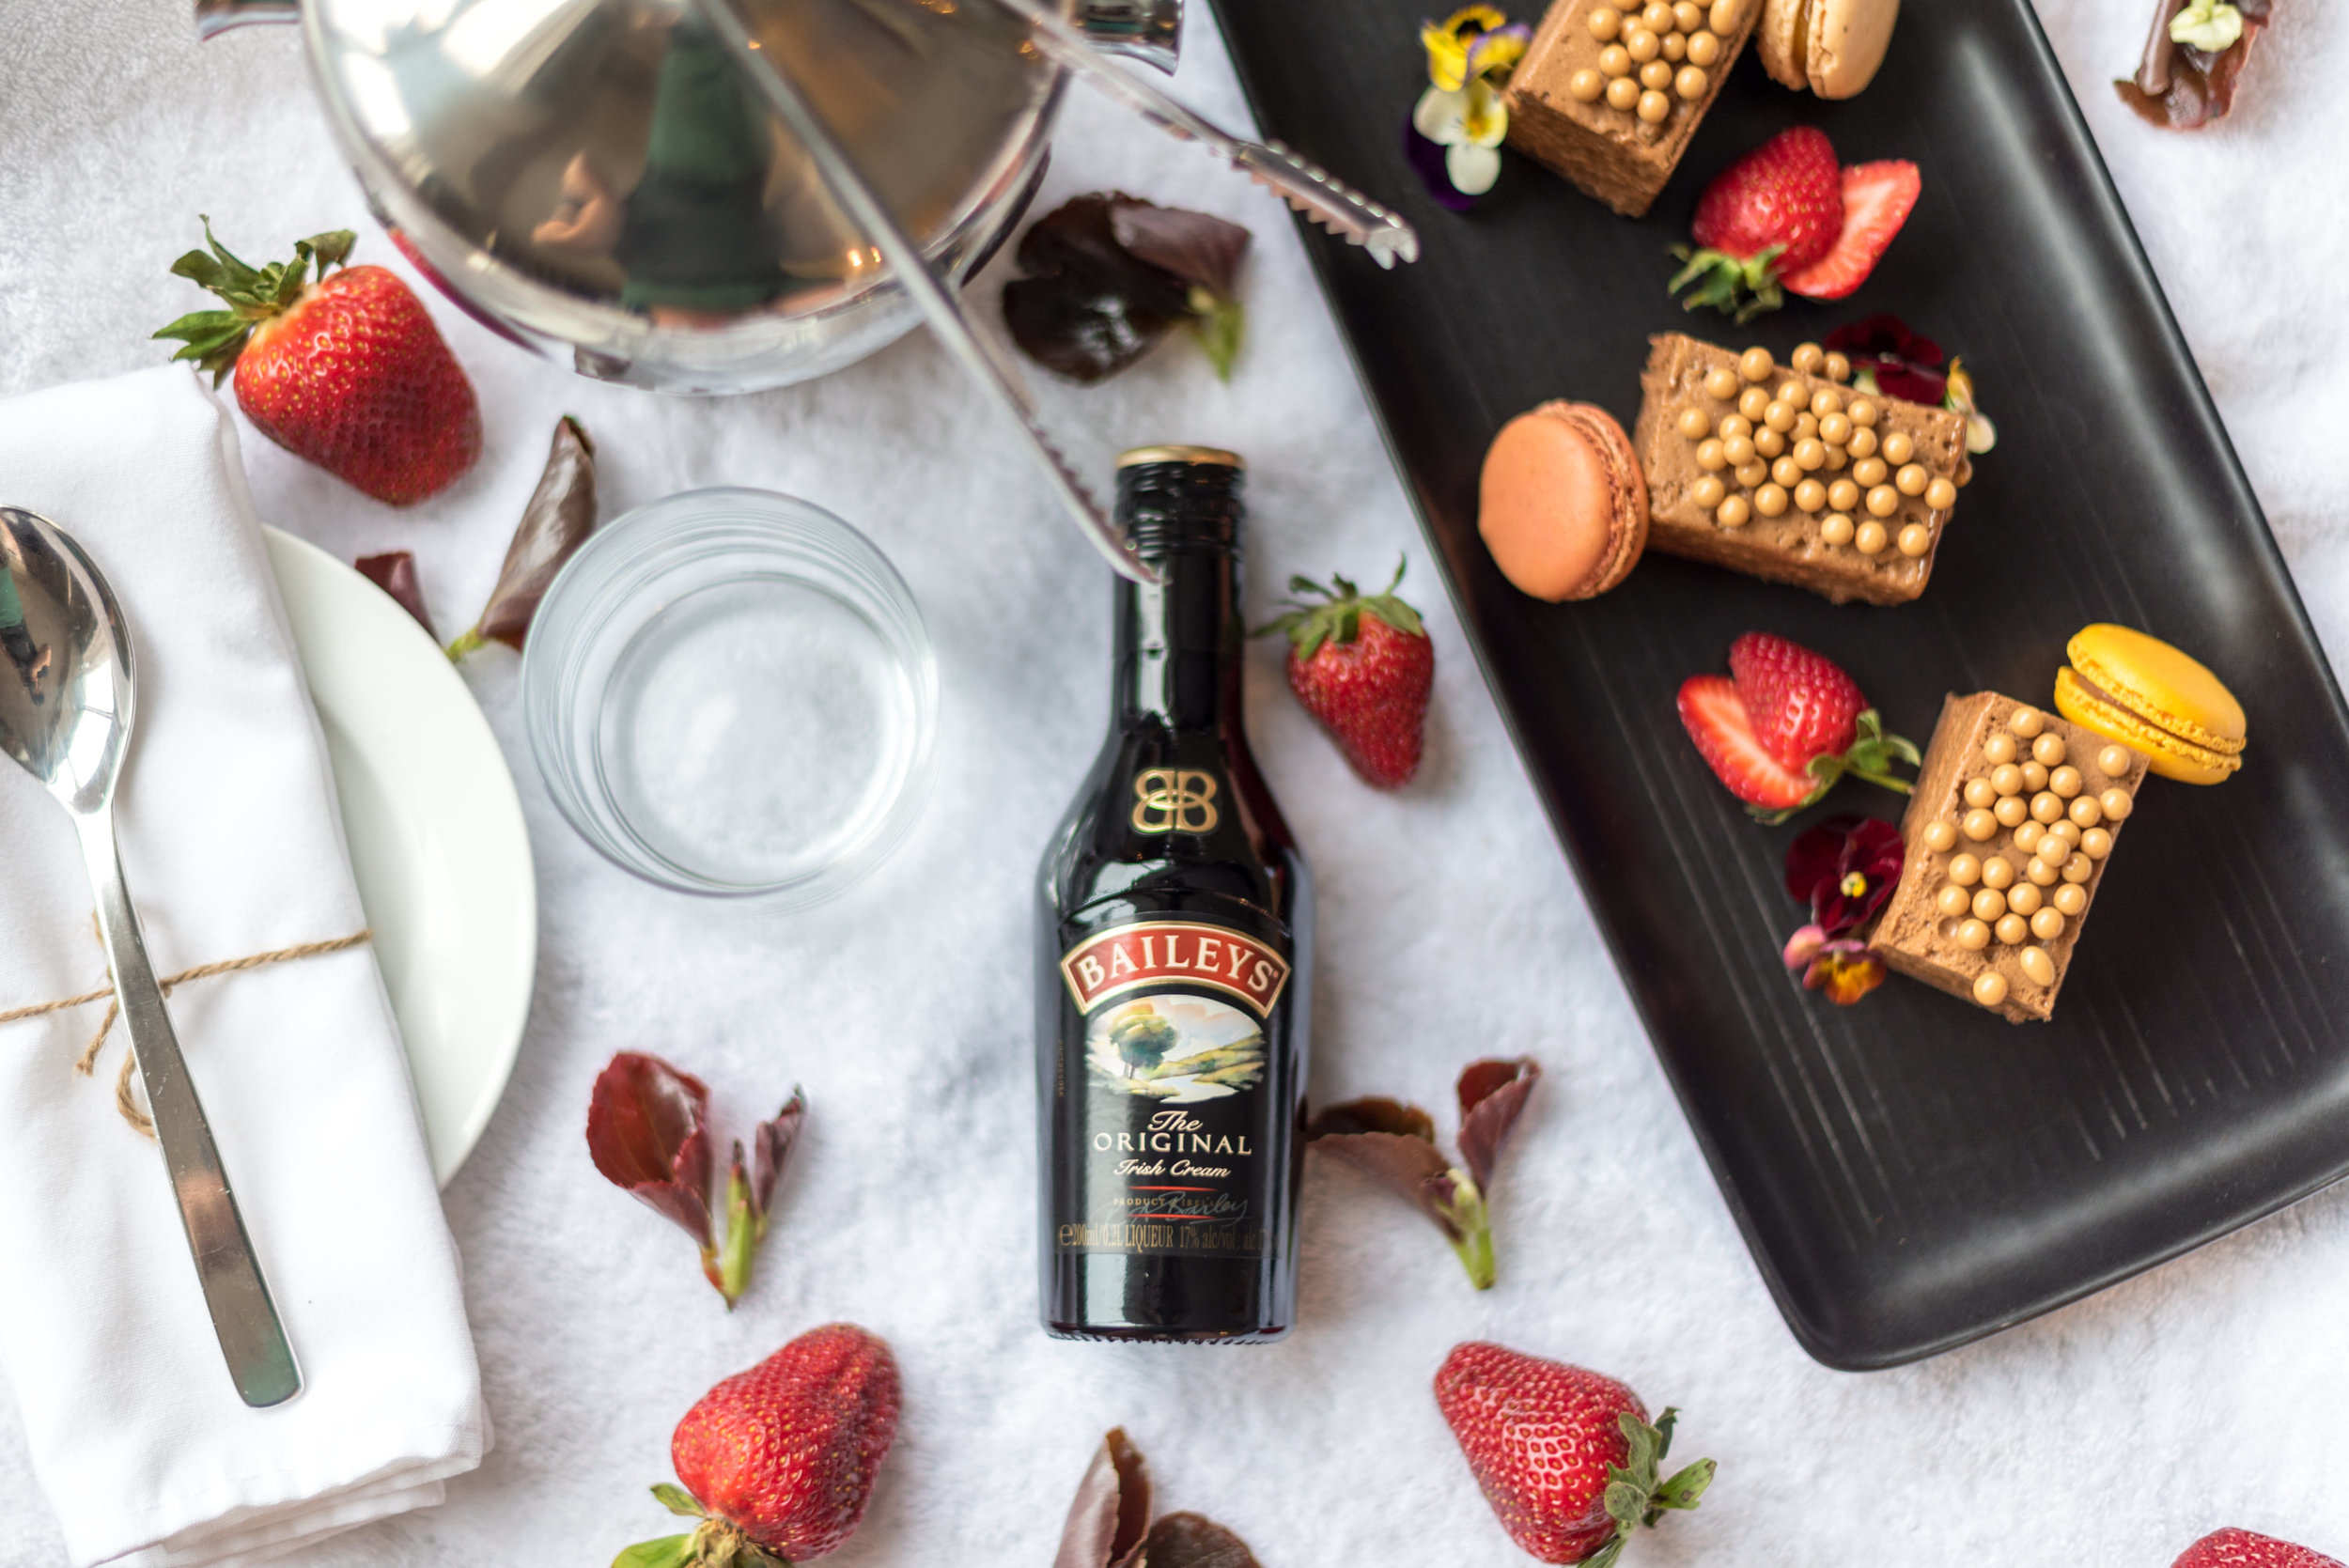 Baileys and Desserts  King Residence Suite - Rydges Auckland